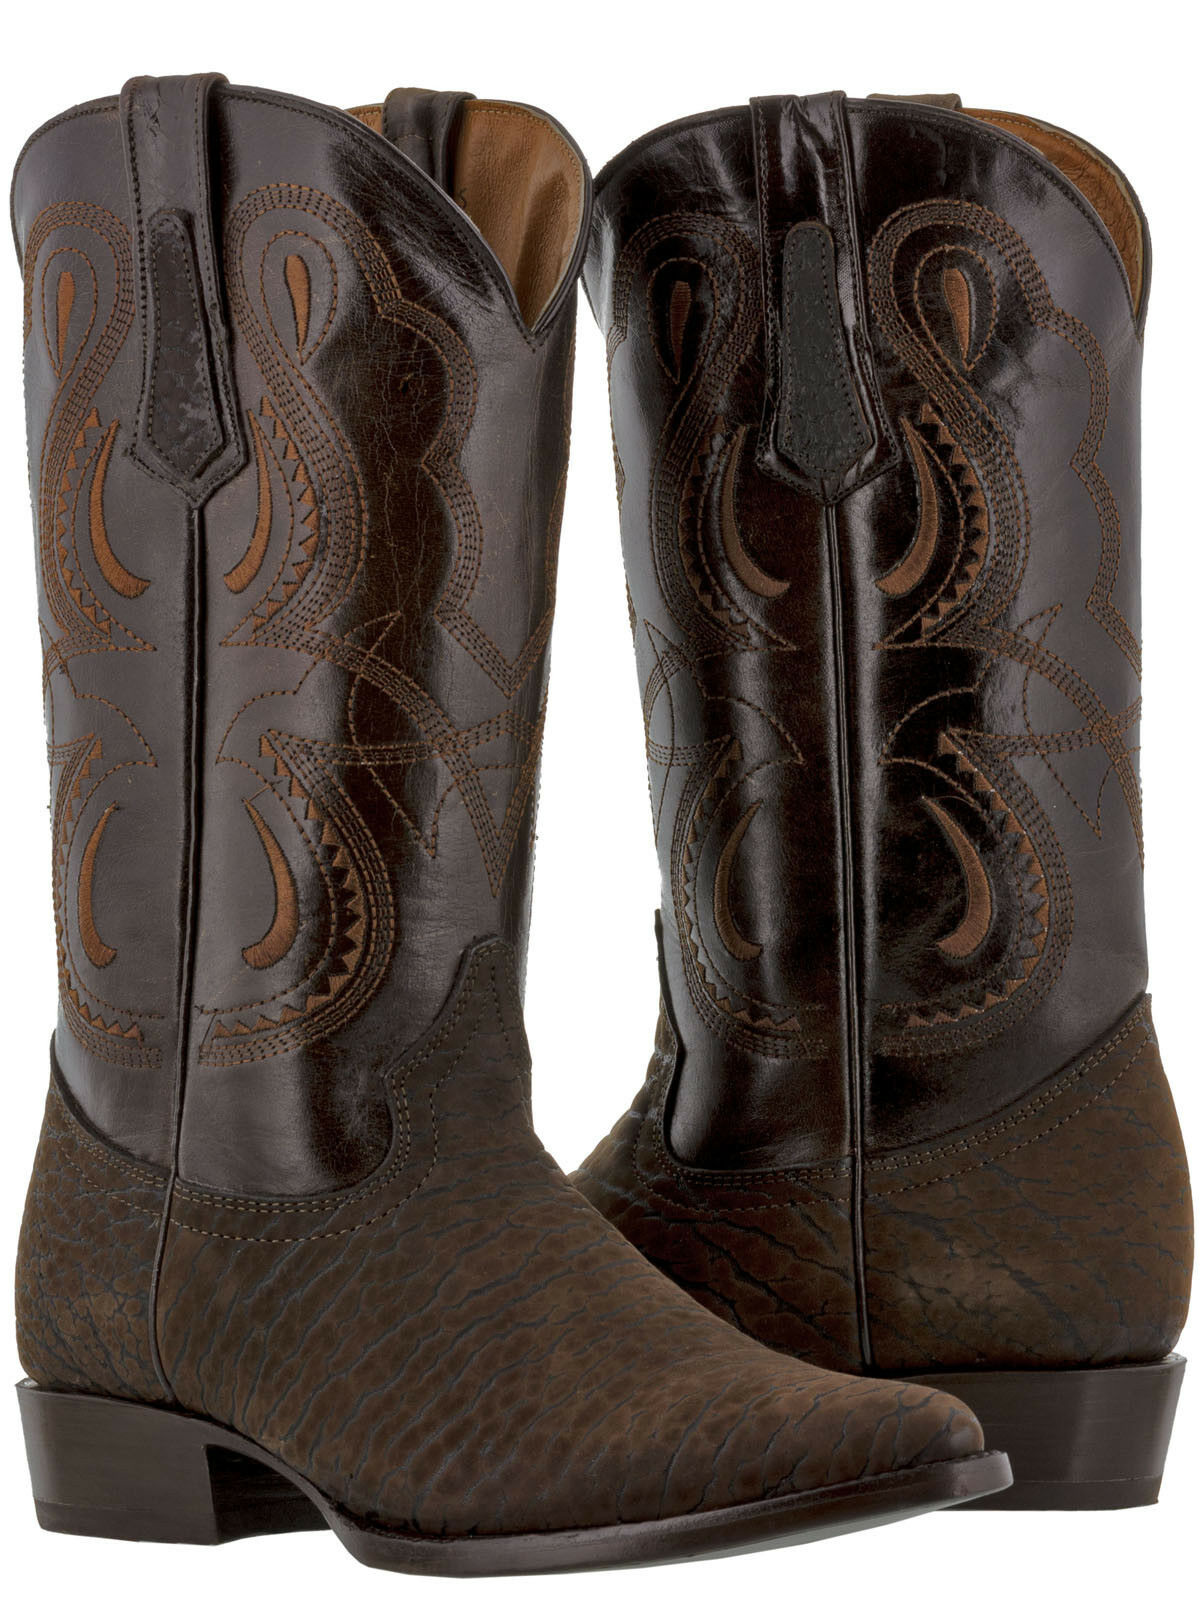 Mens Brown Western Wear Cowboy Boots Bison Bull Design Leather Pointed Toe